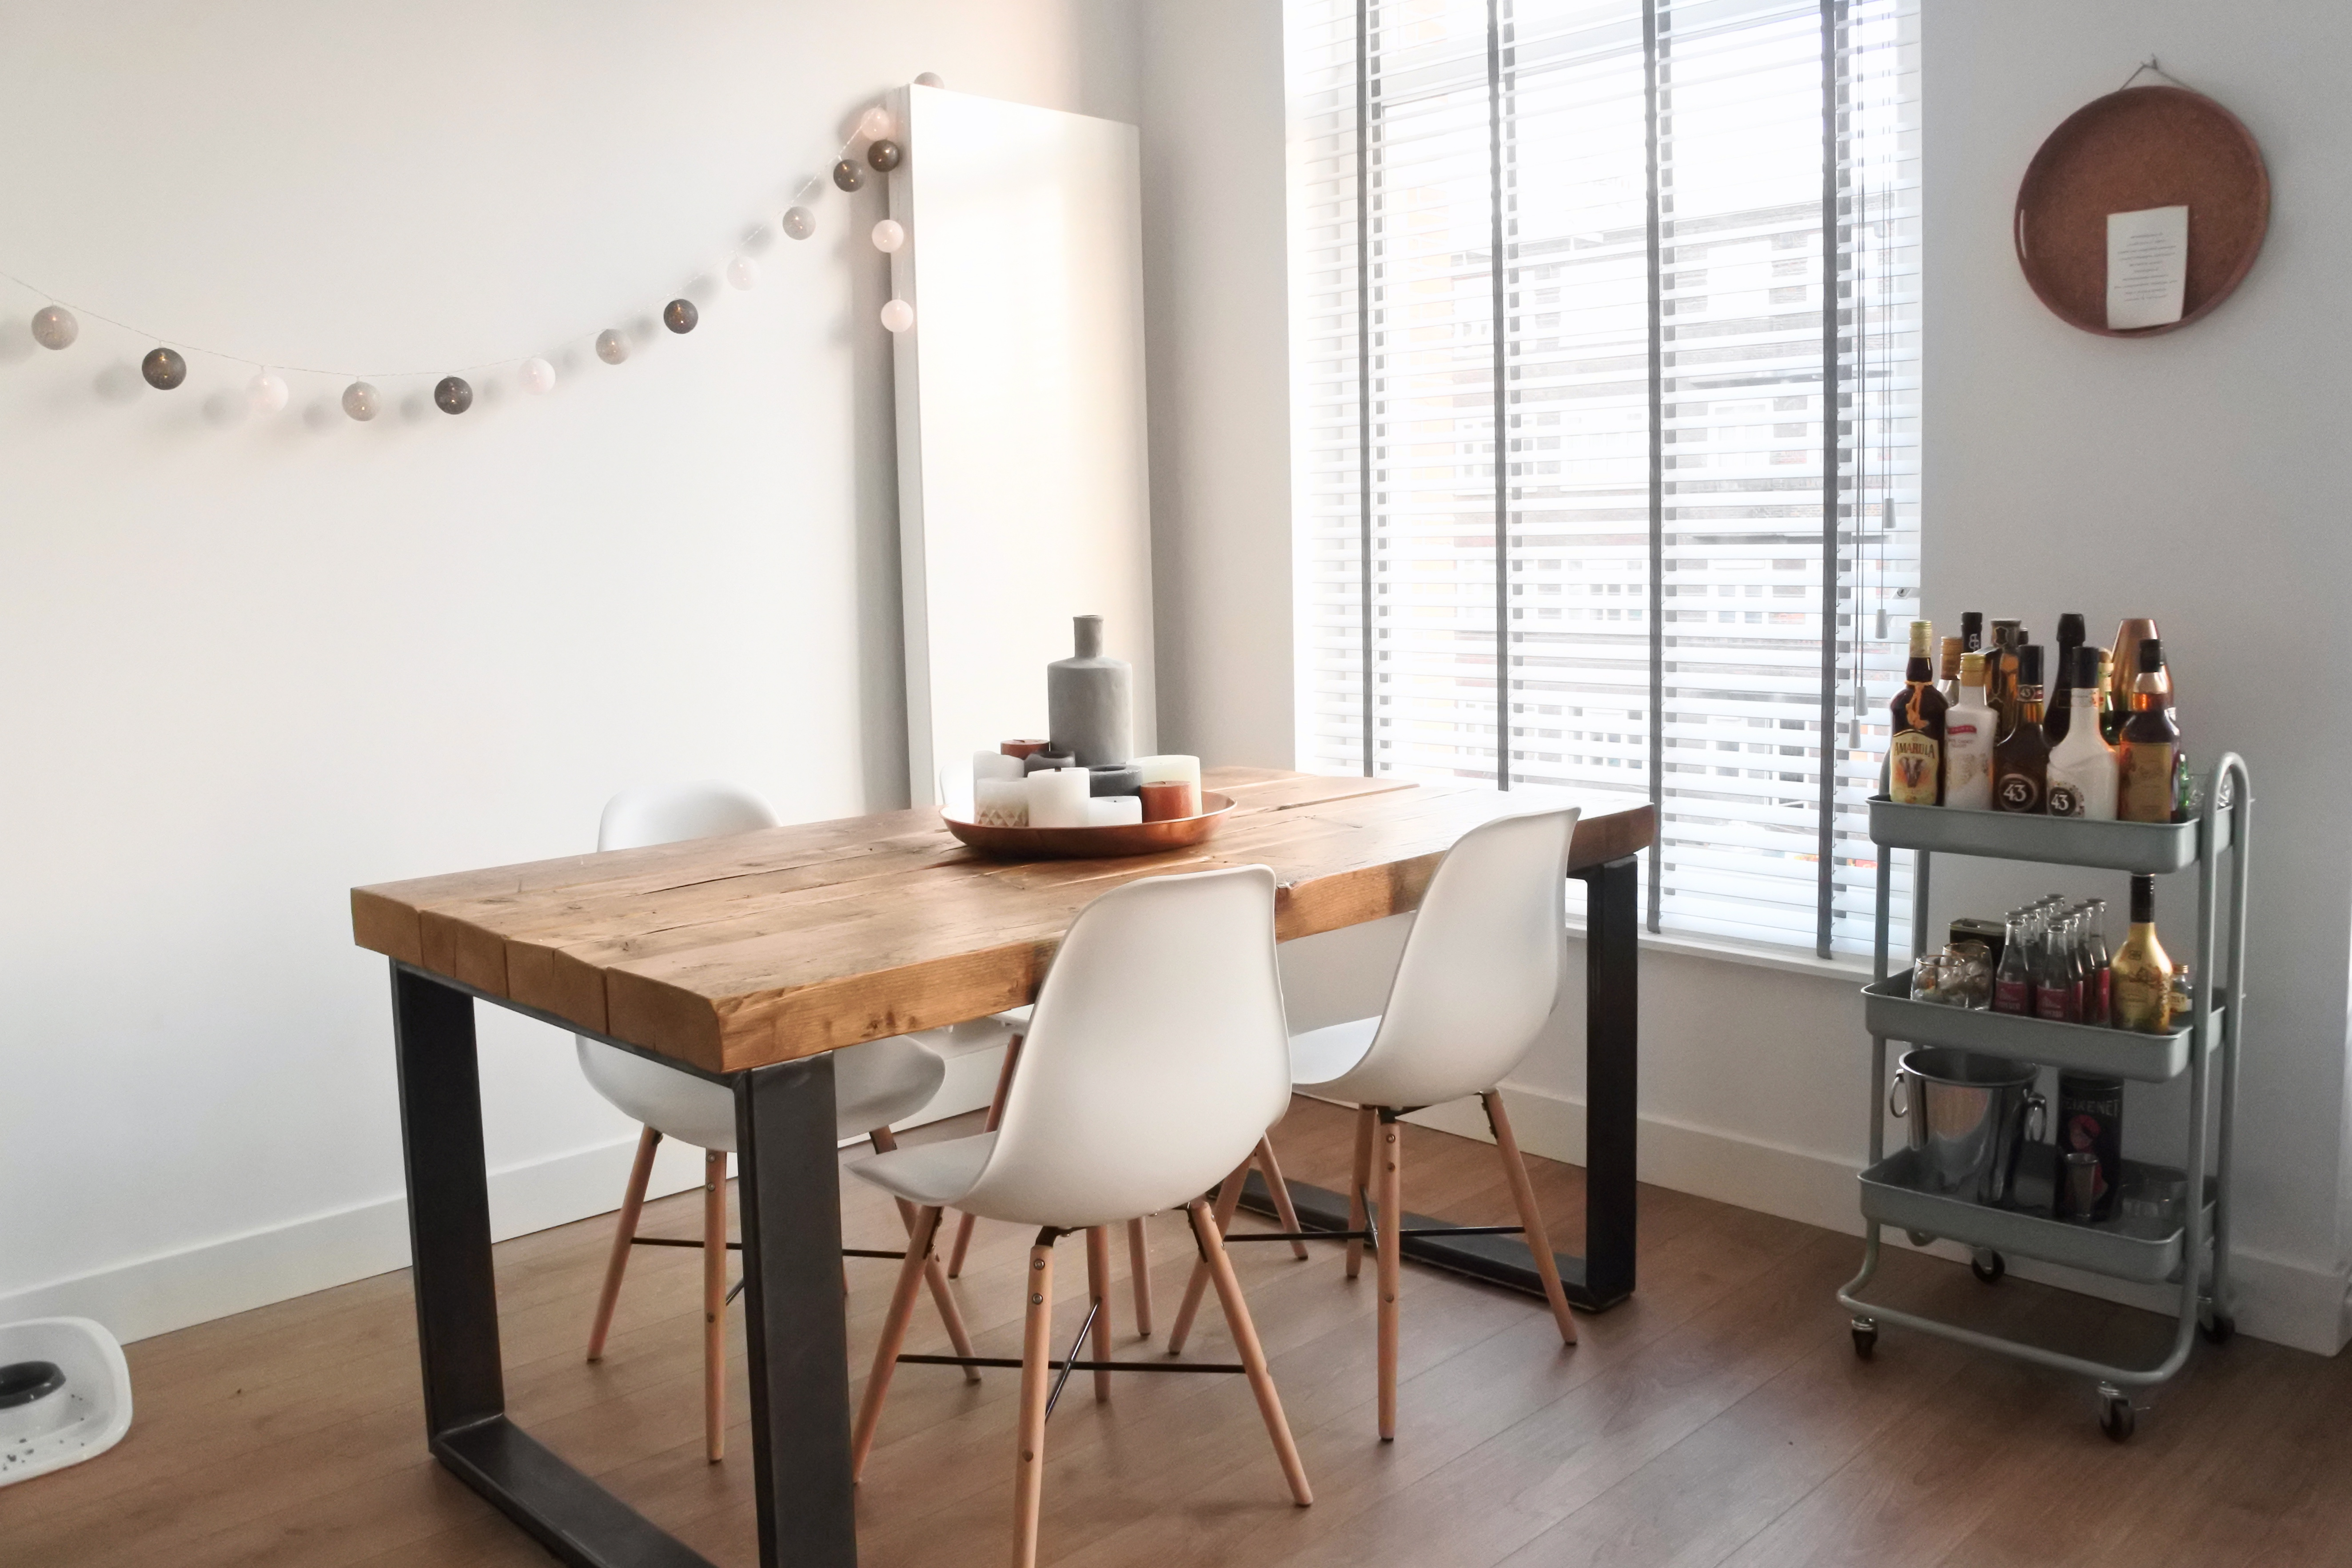 interior-styling-amsterdam-hygge-styling-dinning-table